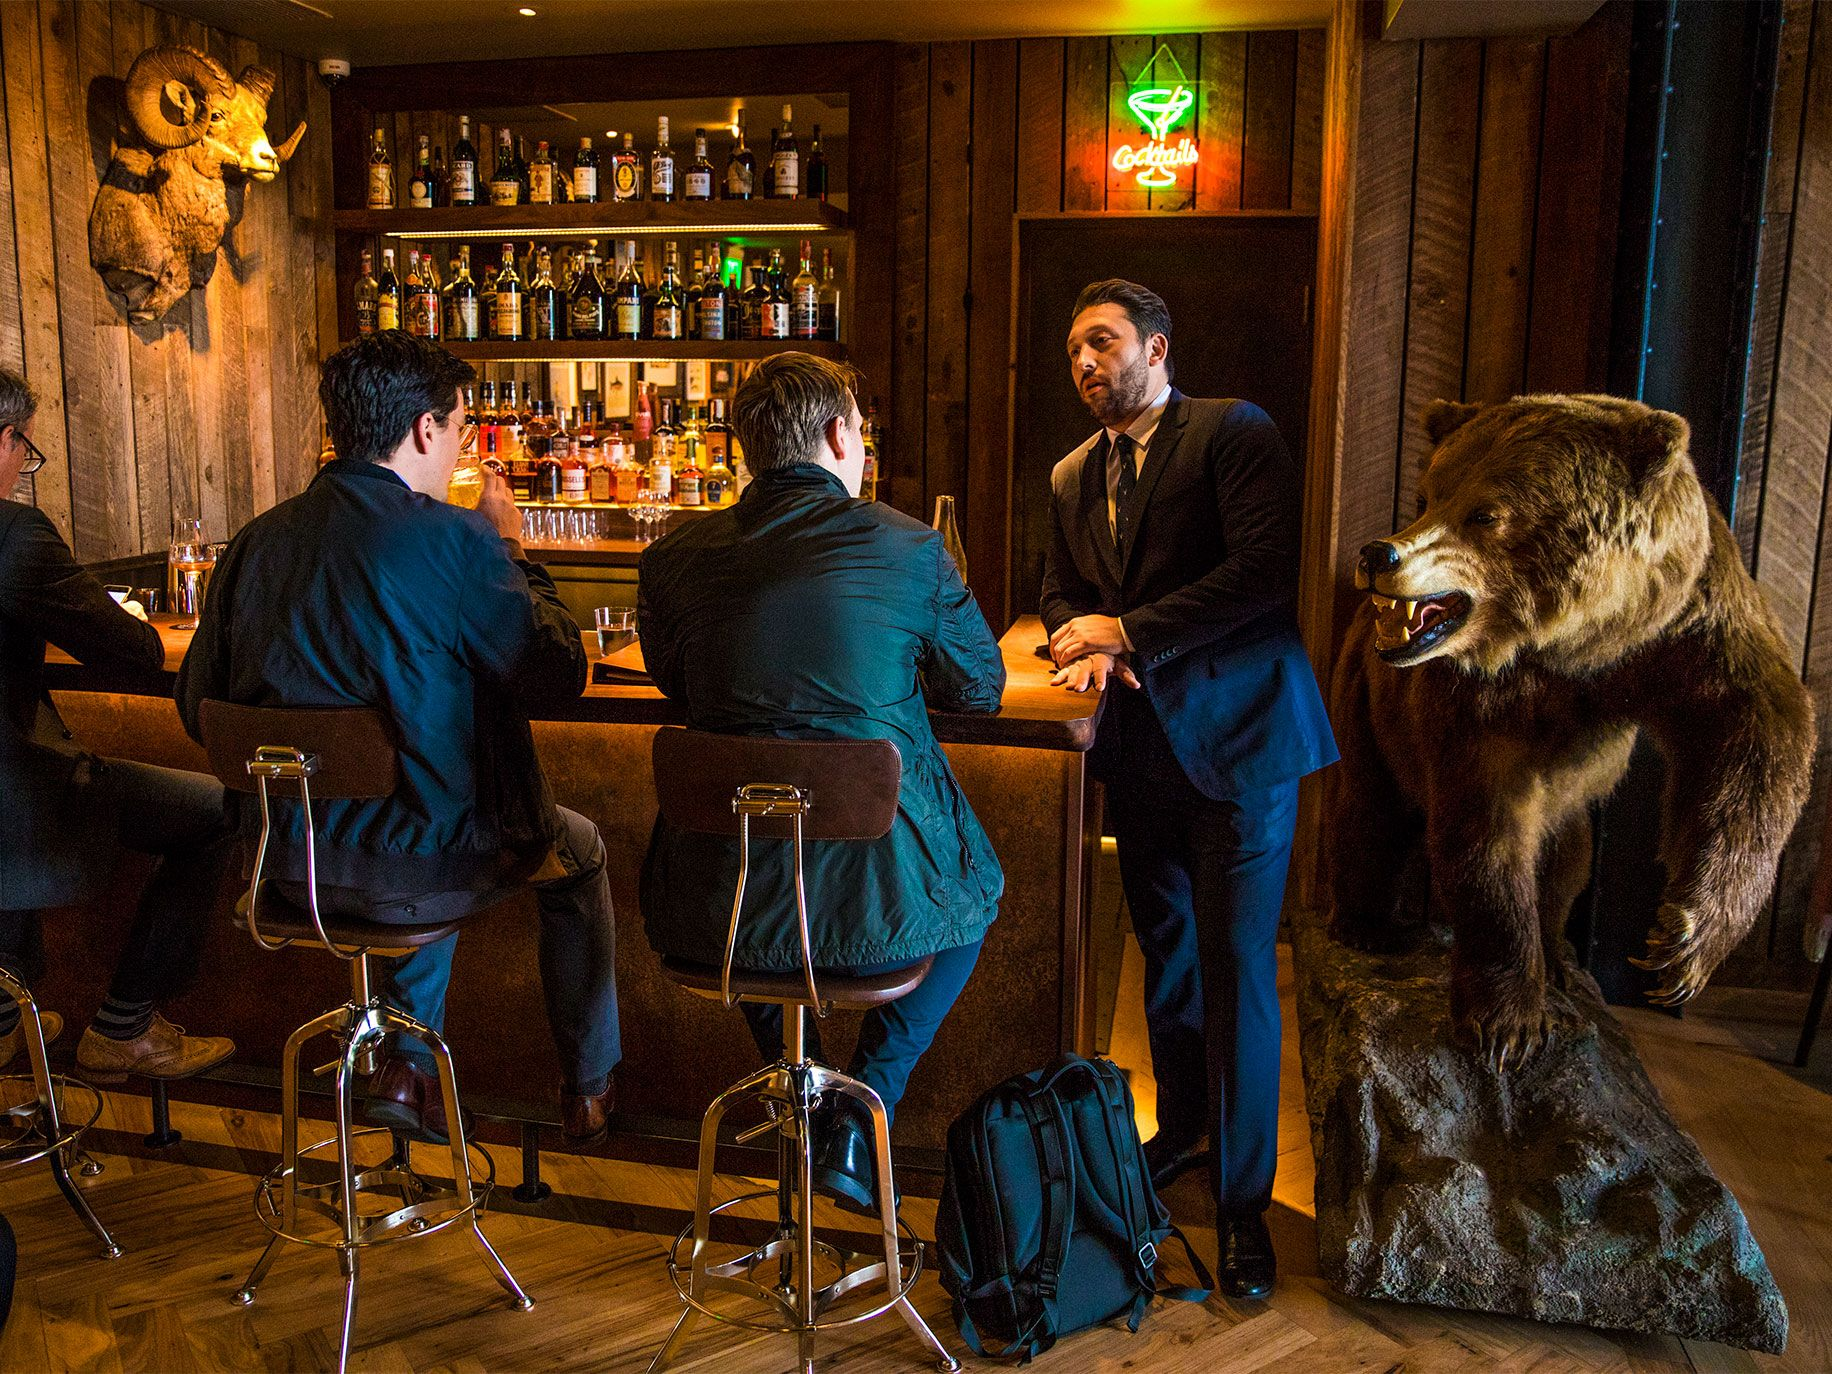 Angler boasts two bars, one in the main dining area and the other in an adjoining space, where animal heads on the walls make it look like a hunter's trophy room.